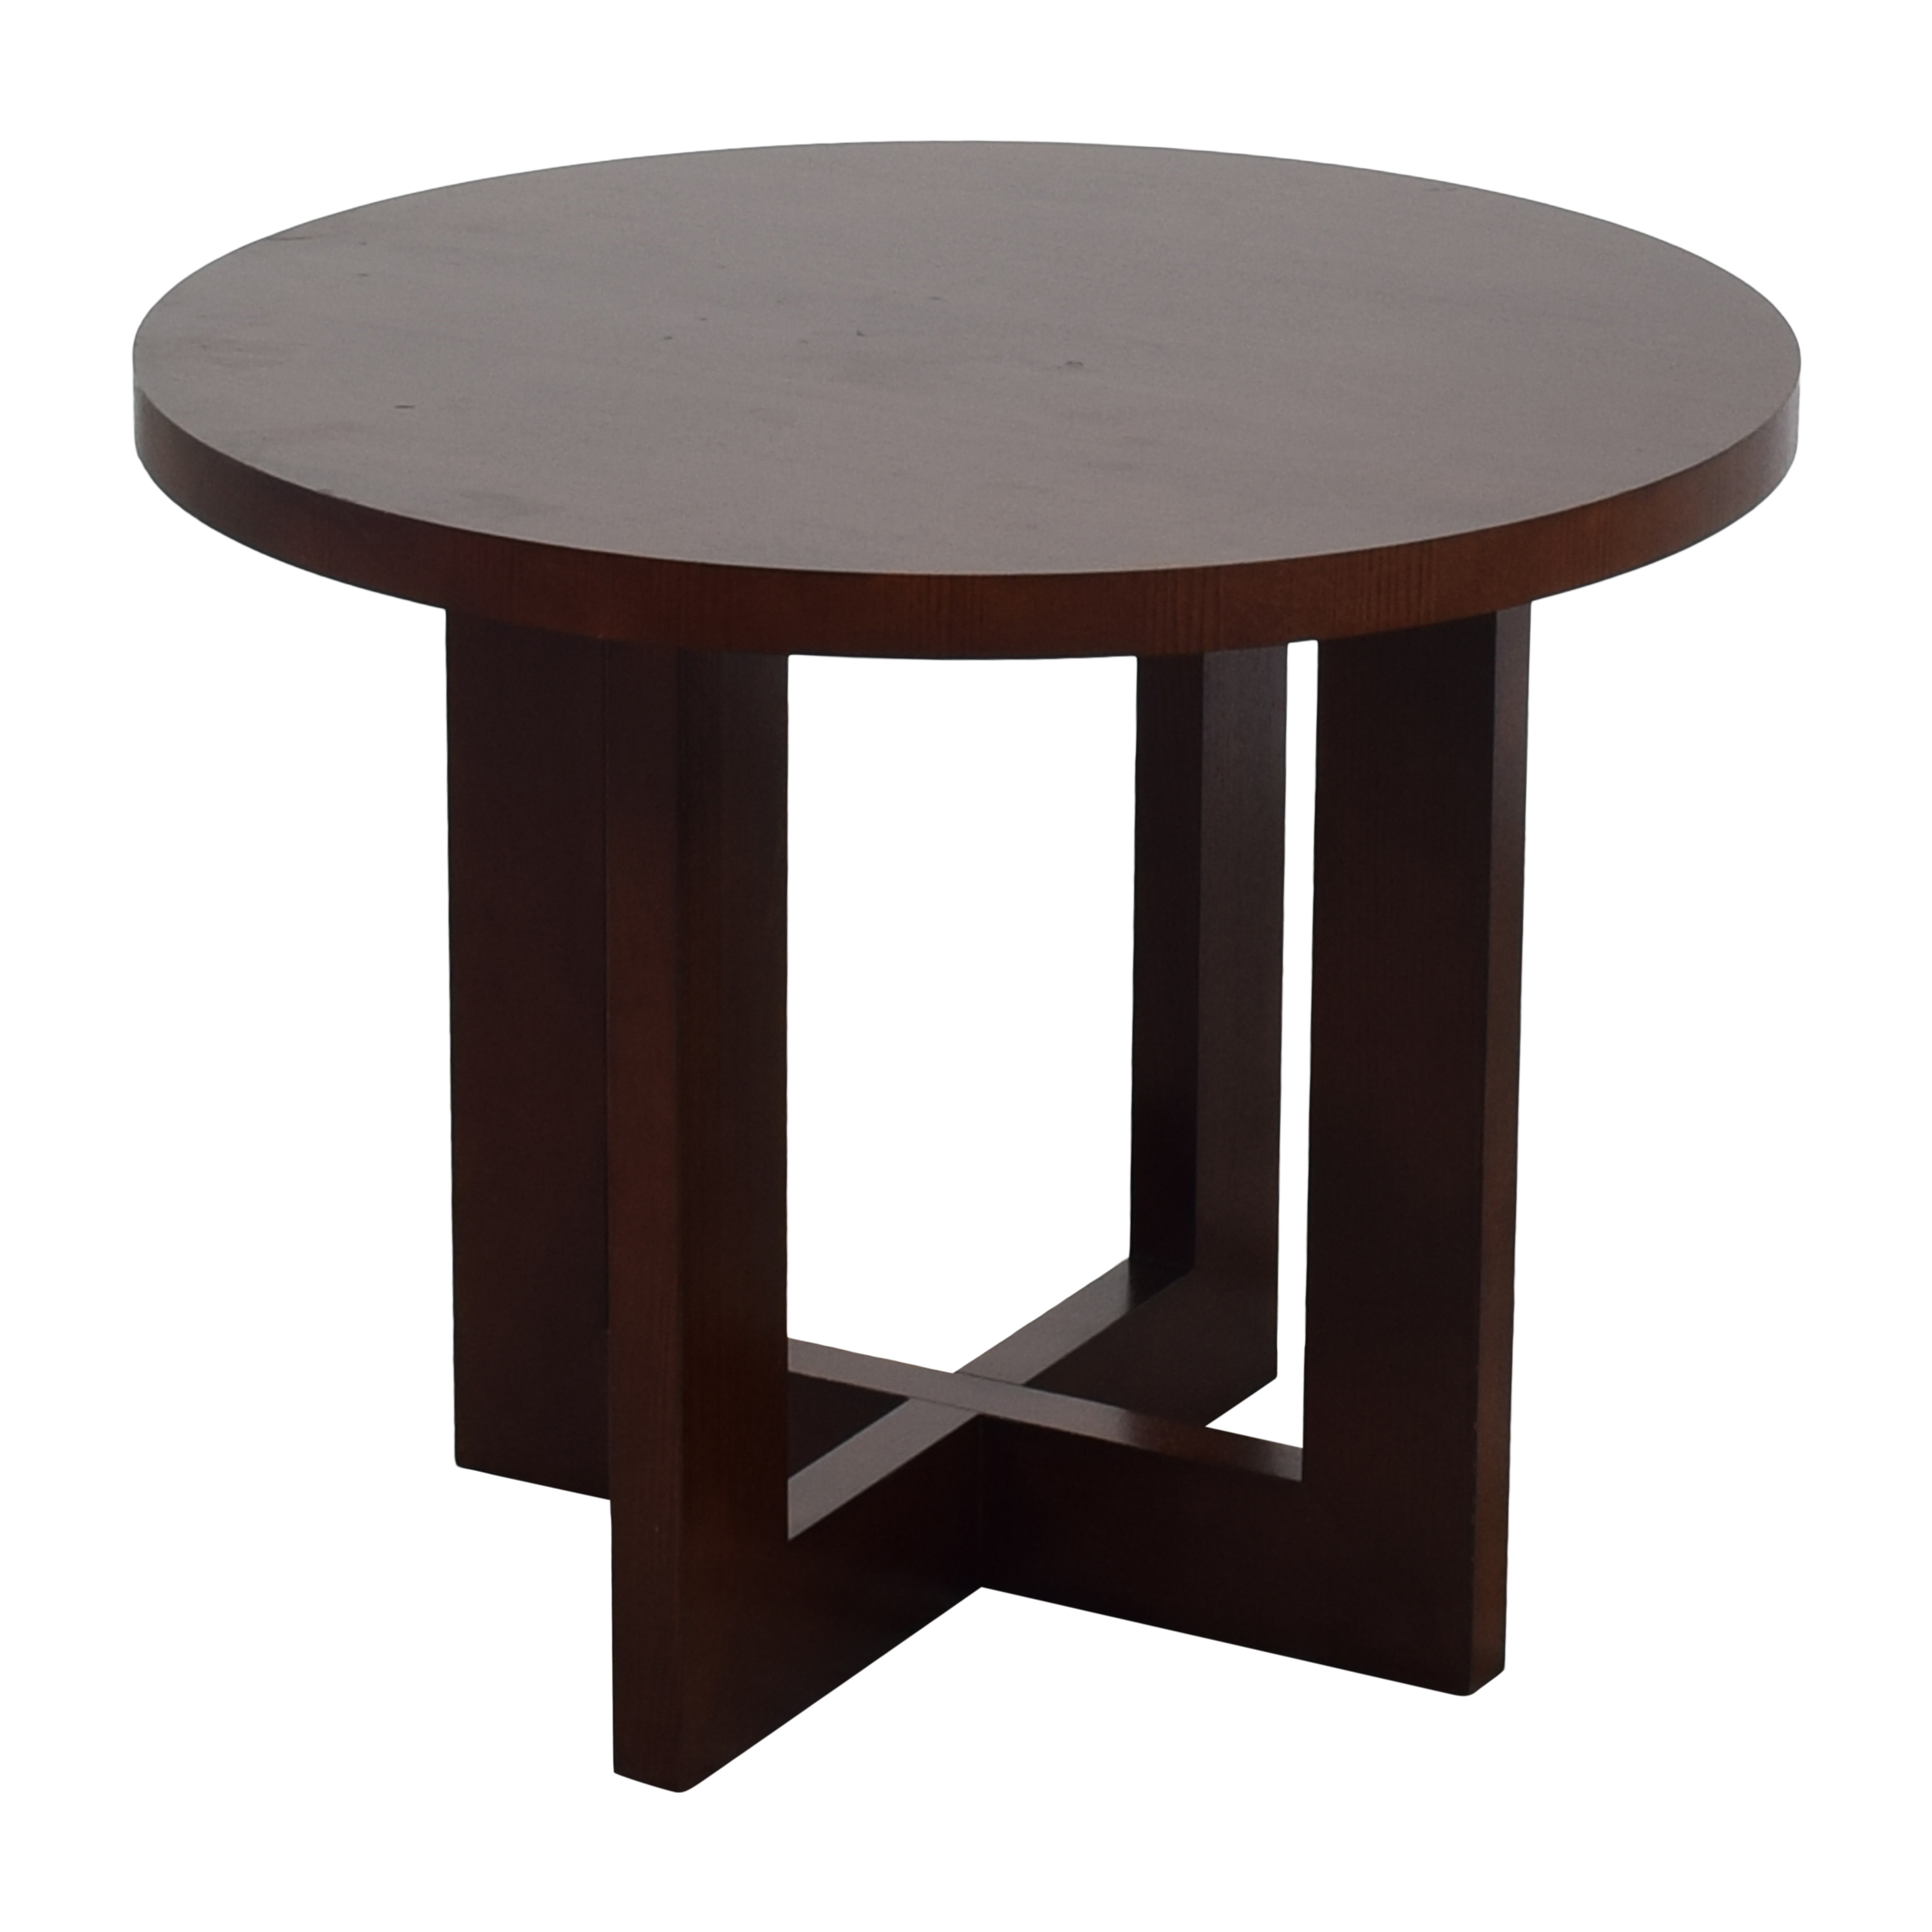 Ethan Allen Ethan Allen Round End Table nyc